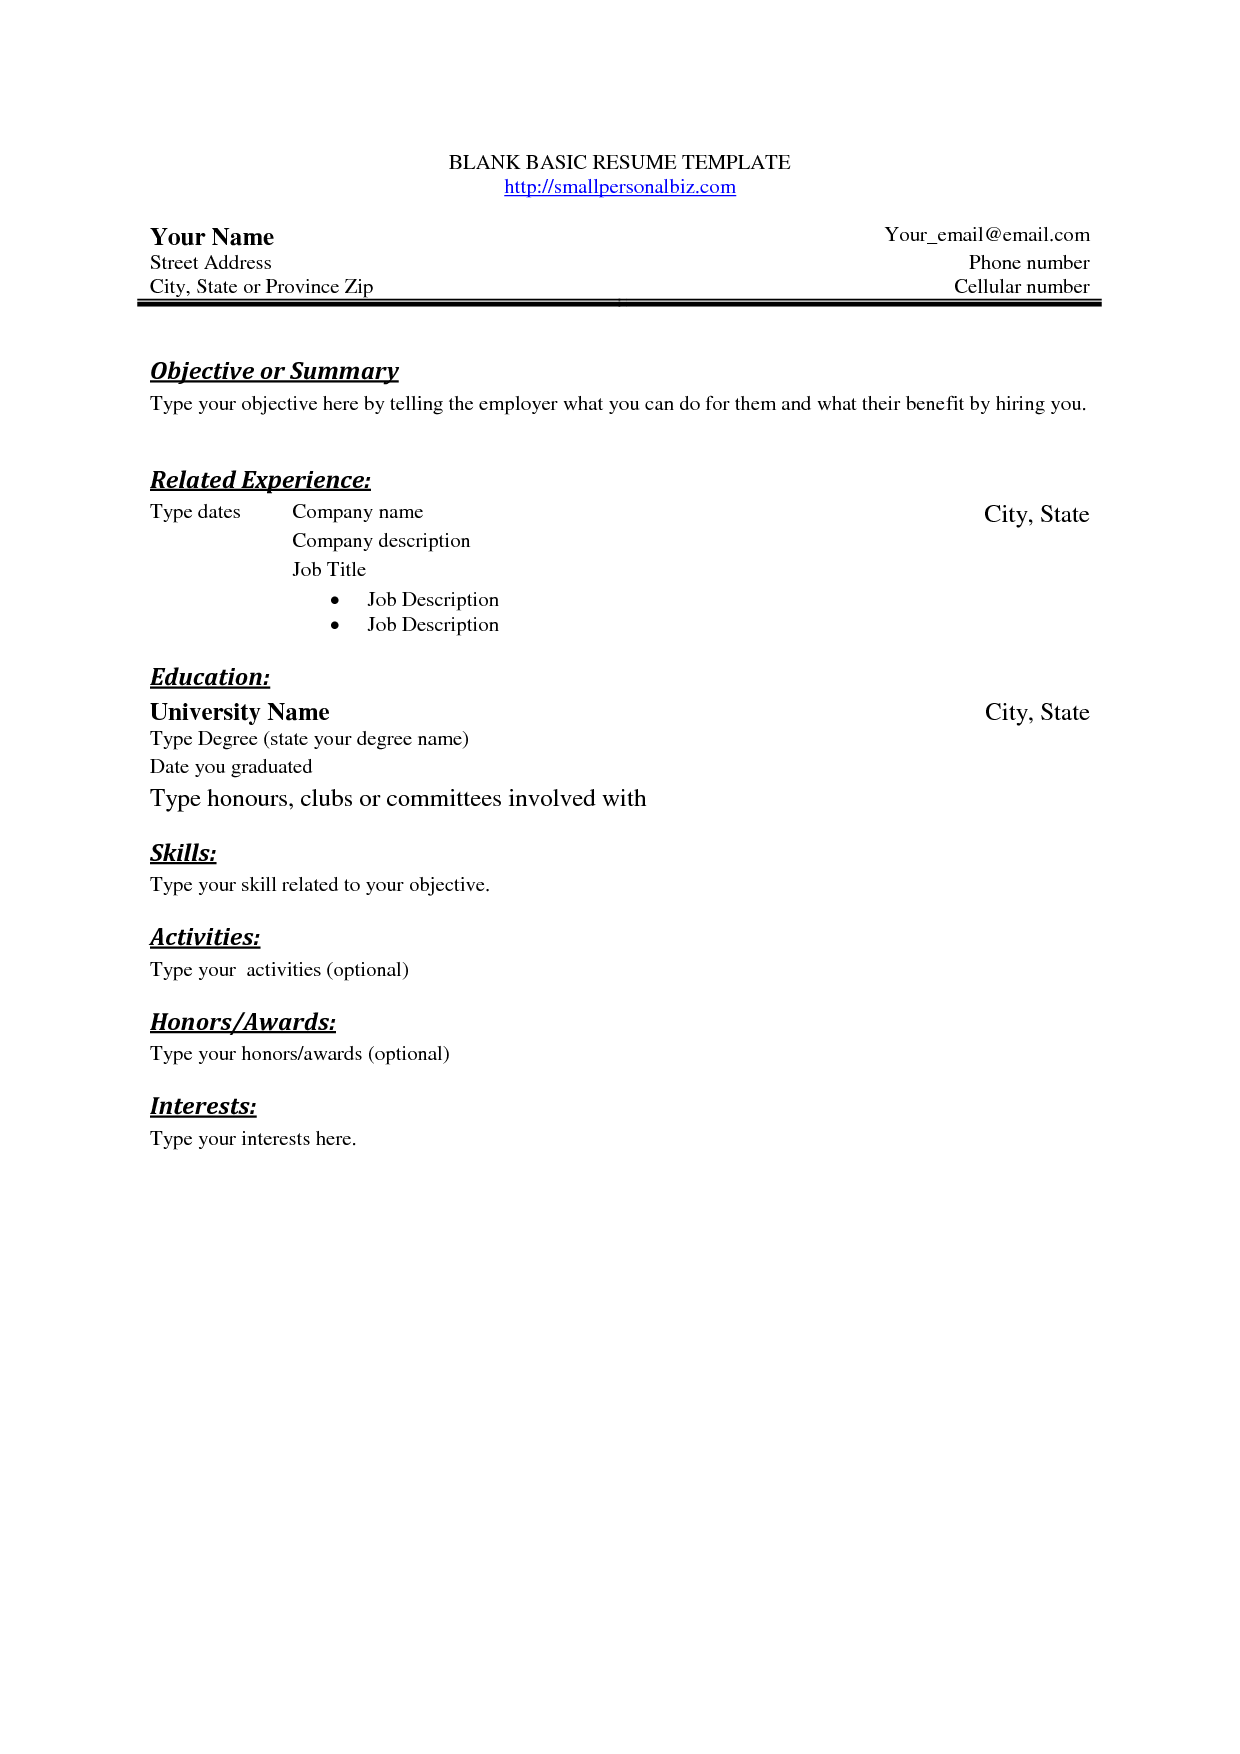 Resume Writing Template Stylist And Luxury Simple Resume Layout 10 Free Basic Blank Resume